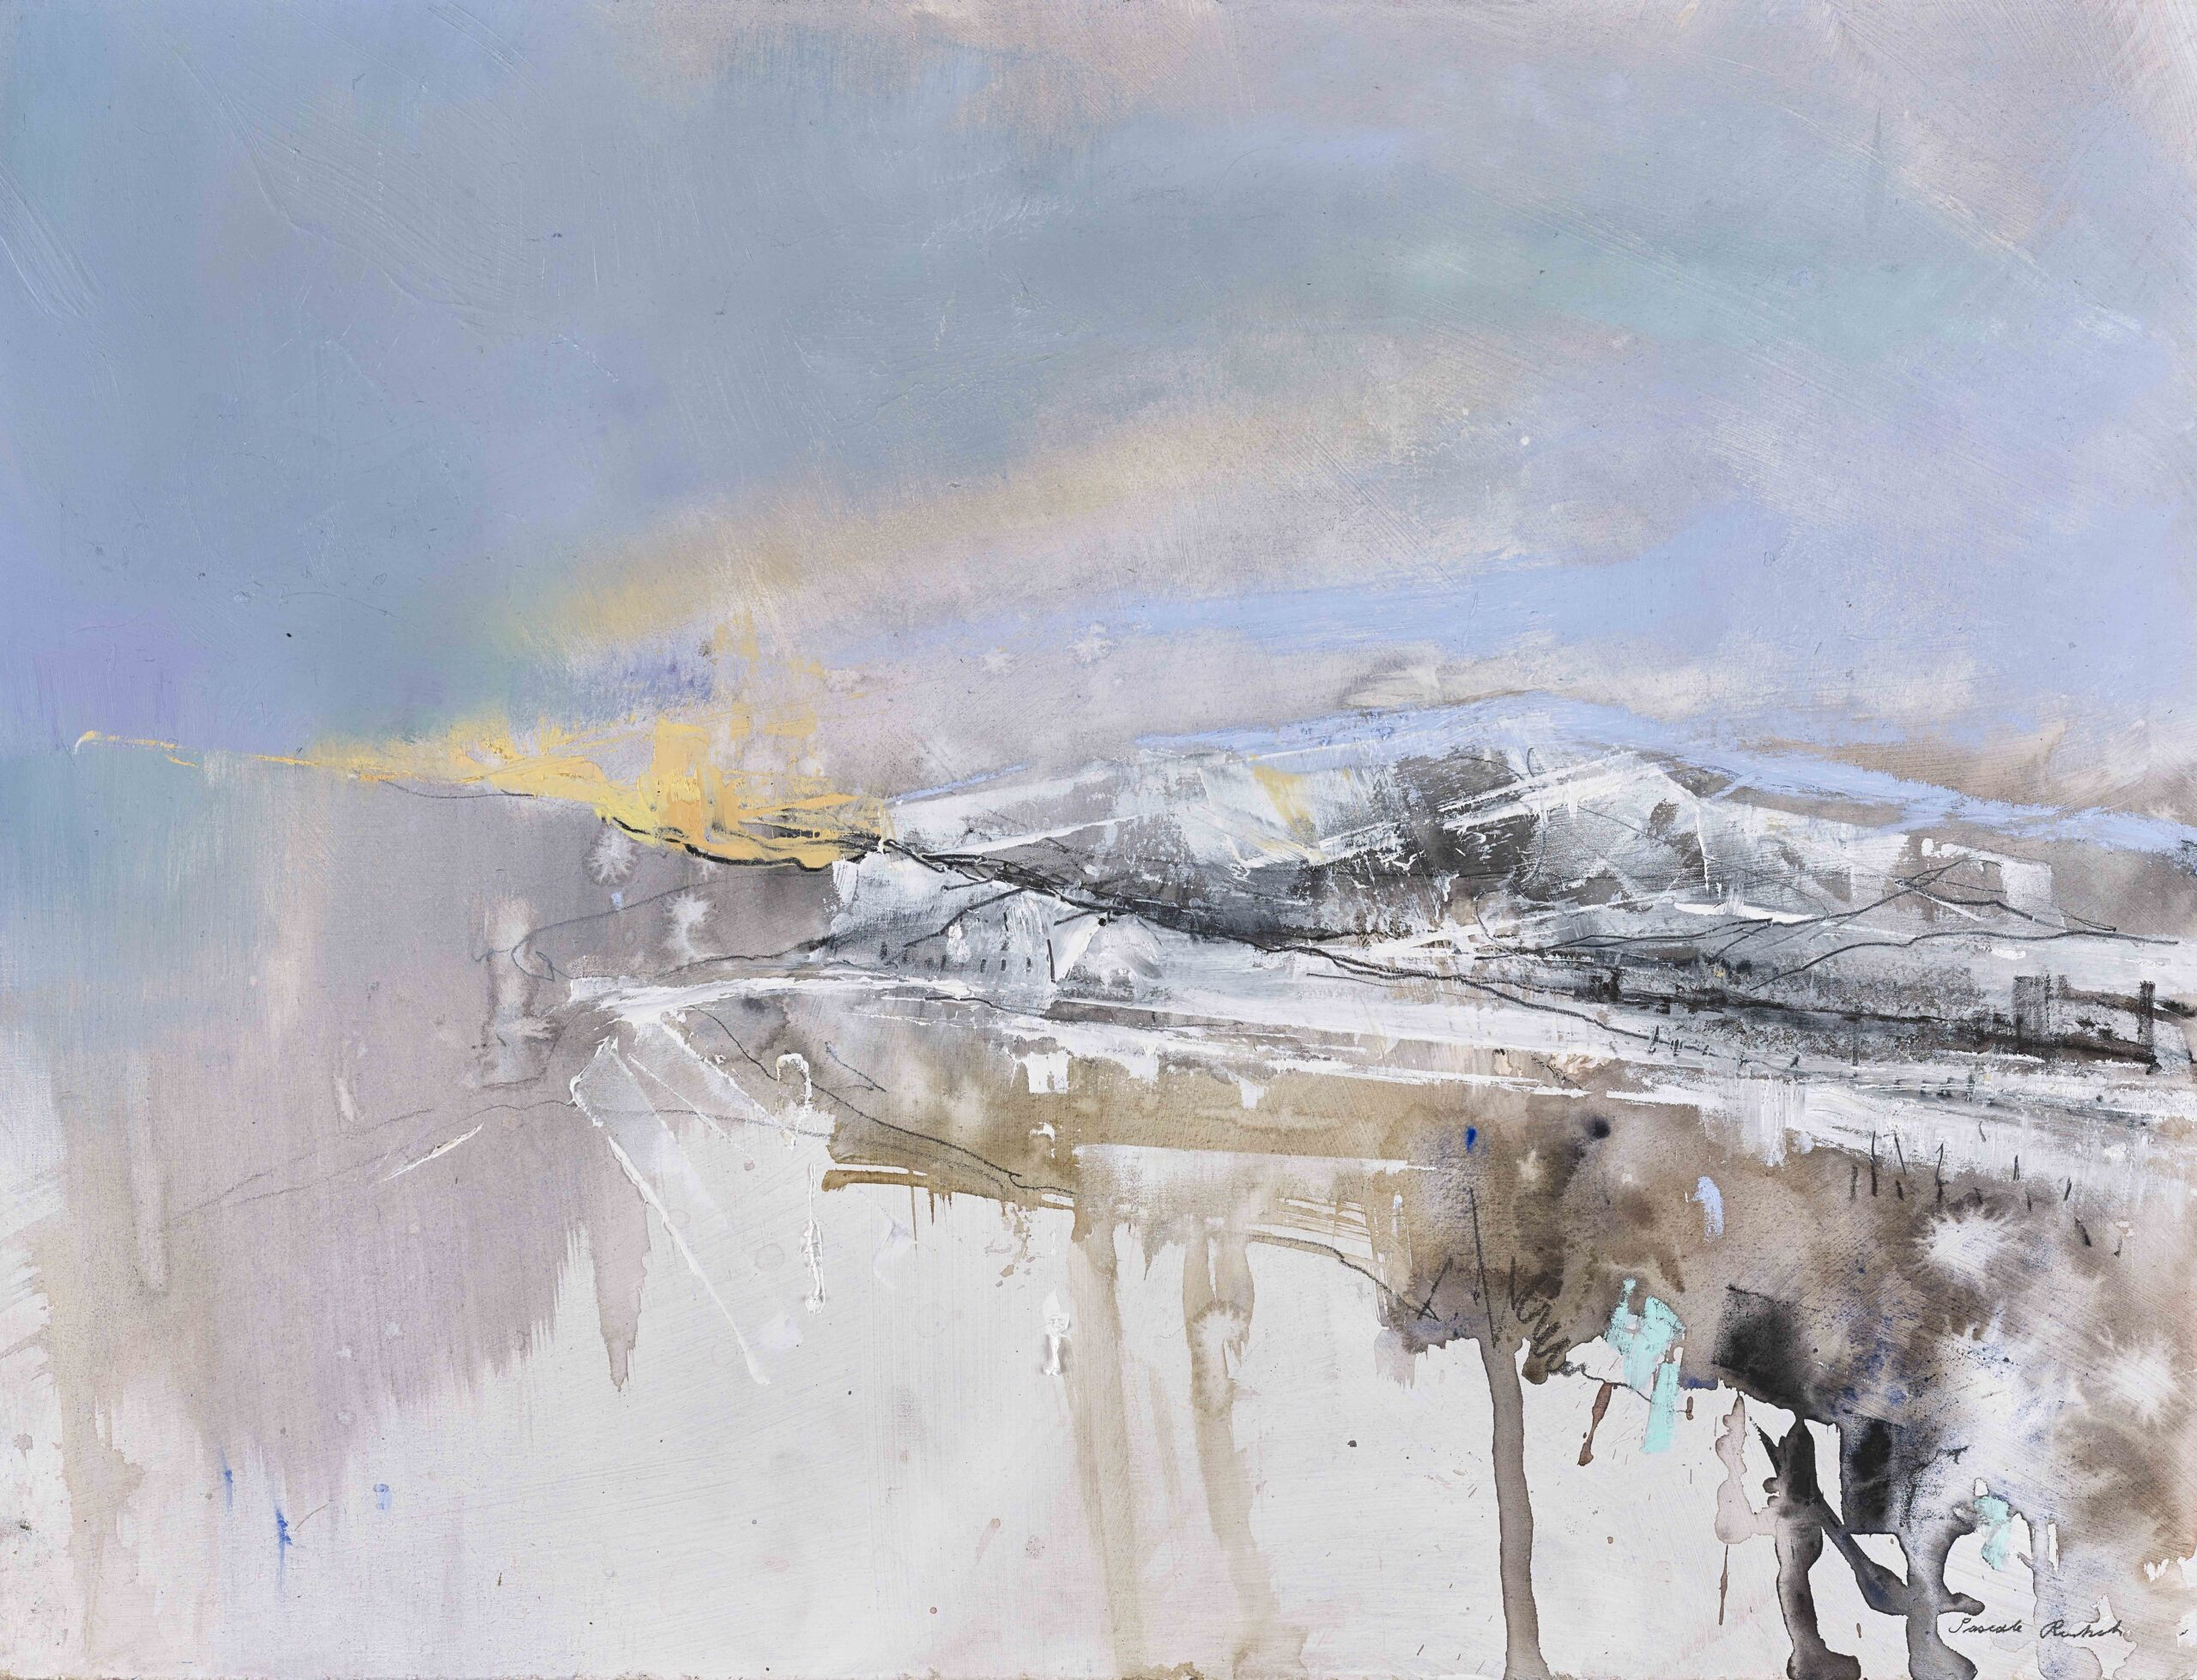 Winter Light, Mixed media on board by Pascale Rentsch